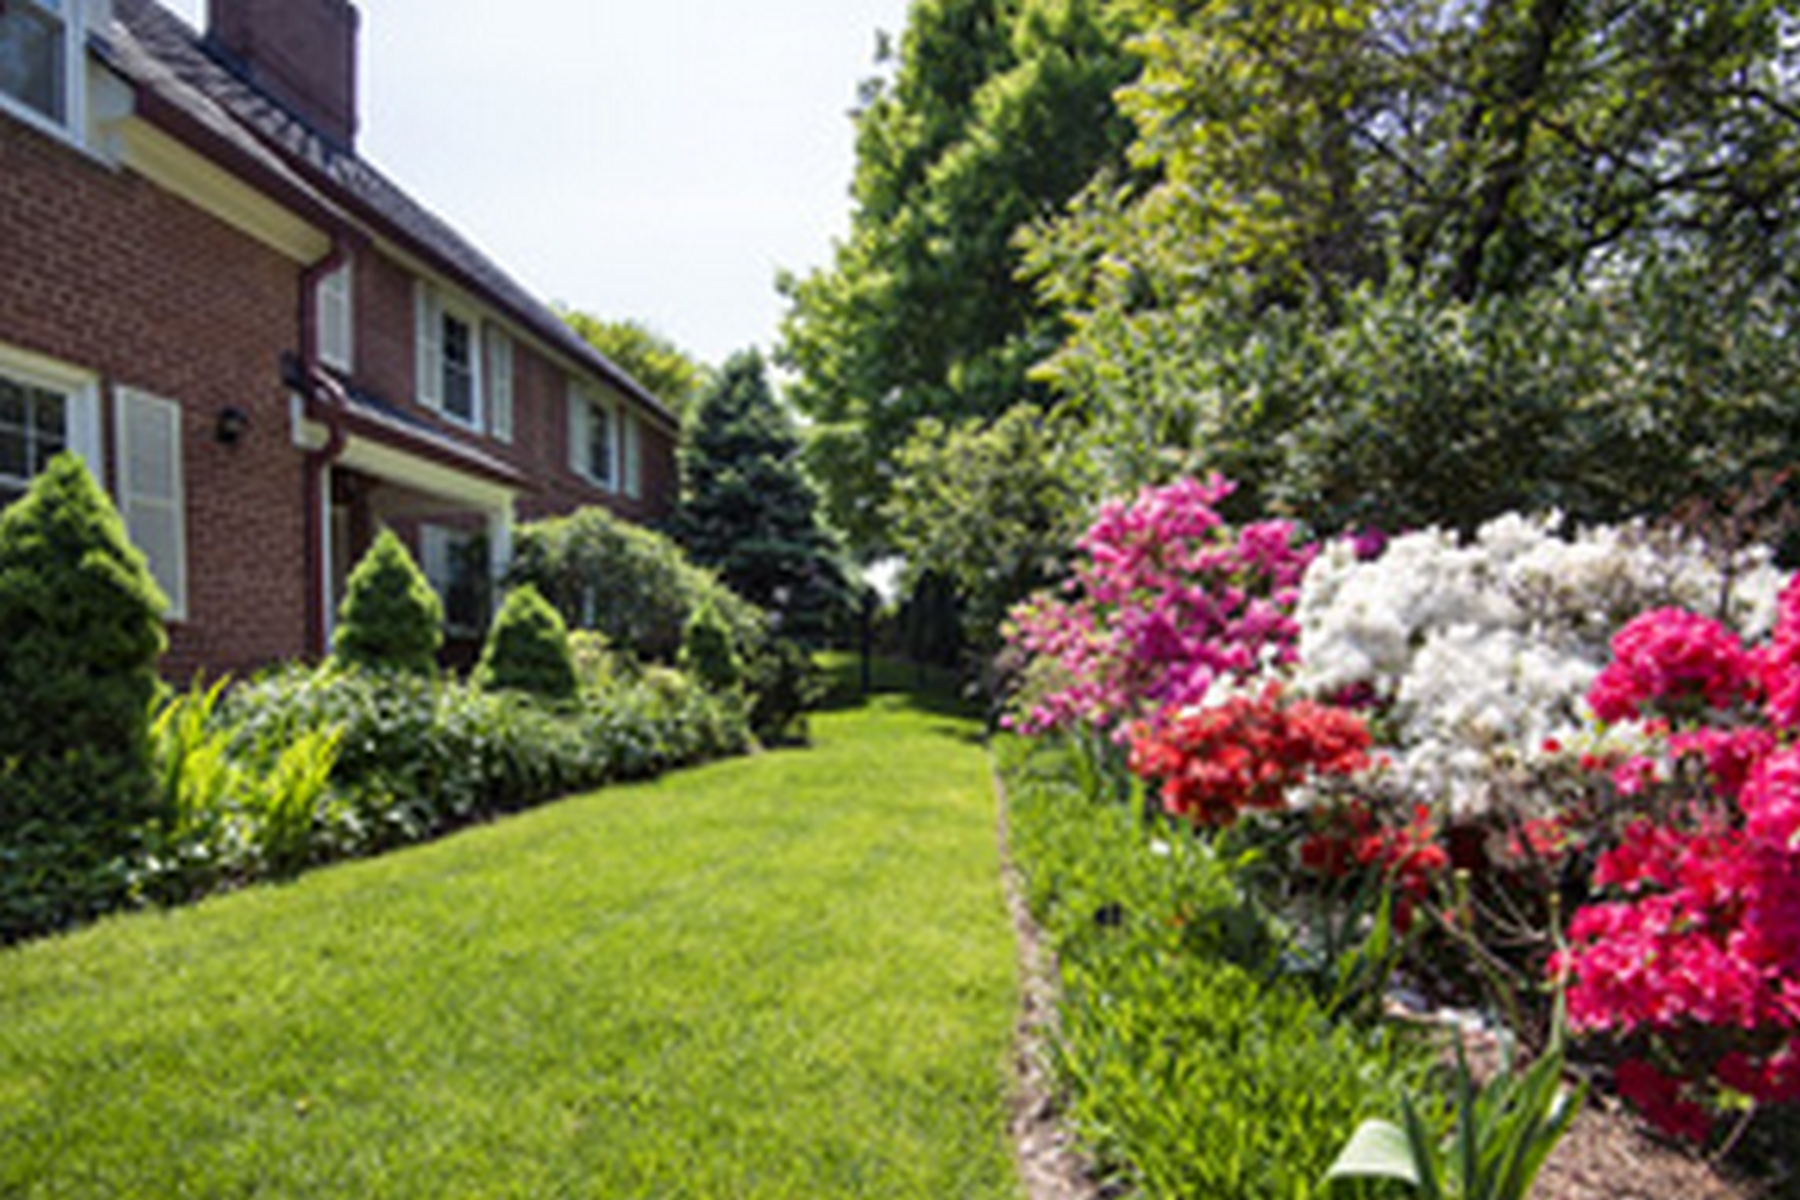 Single Family Home for Sale at Berkley 1699 Foxhall Road Nw Washington, District Of Columbia 20007 United States